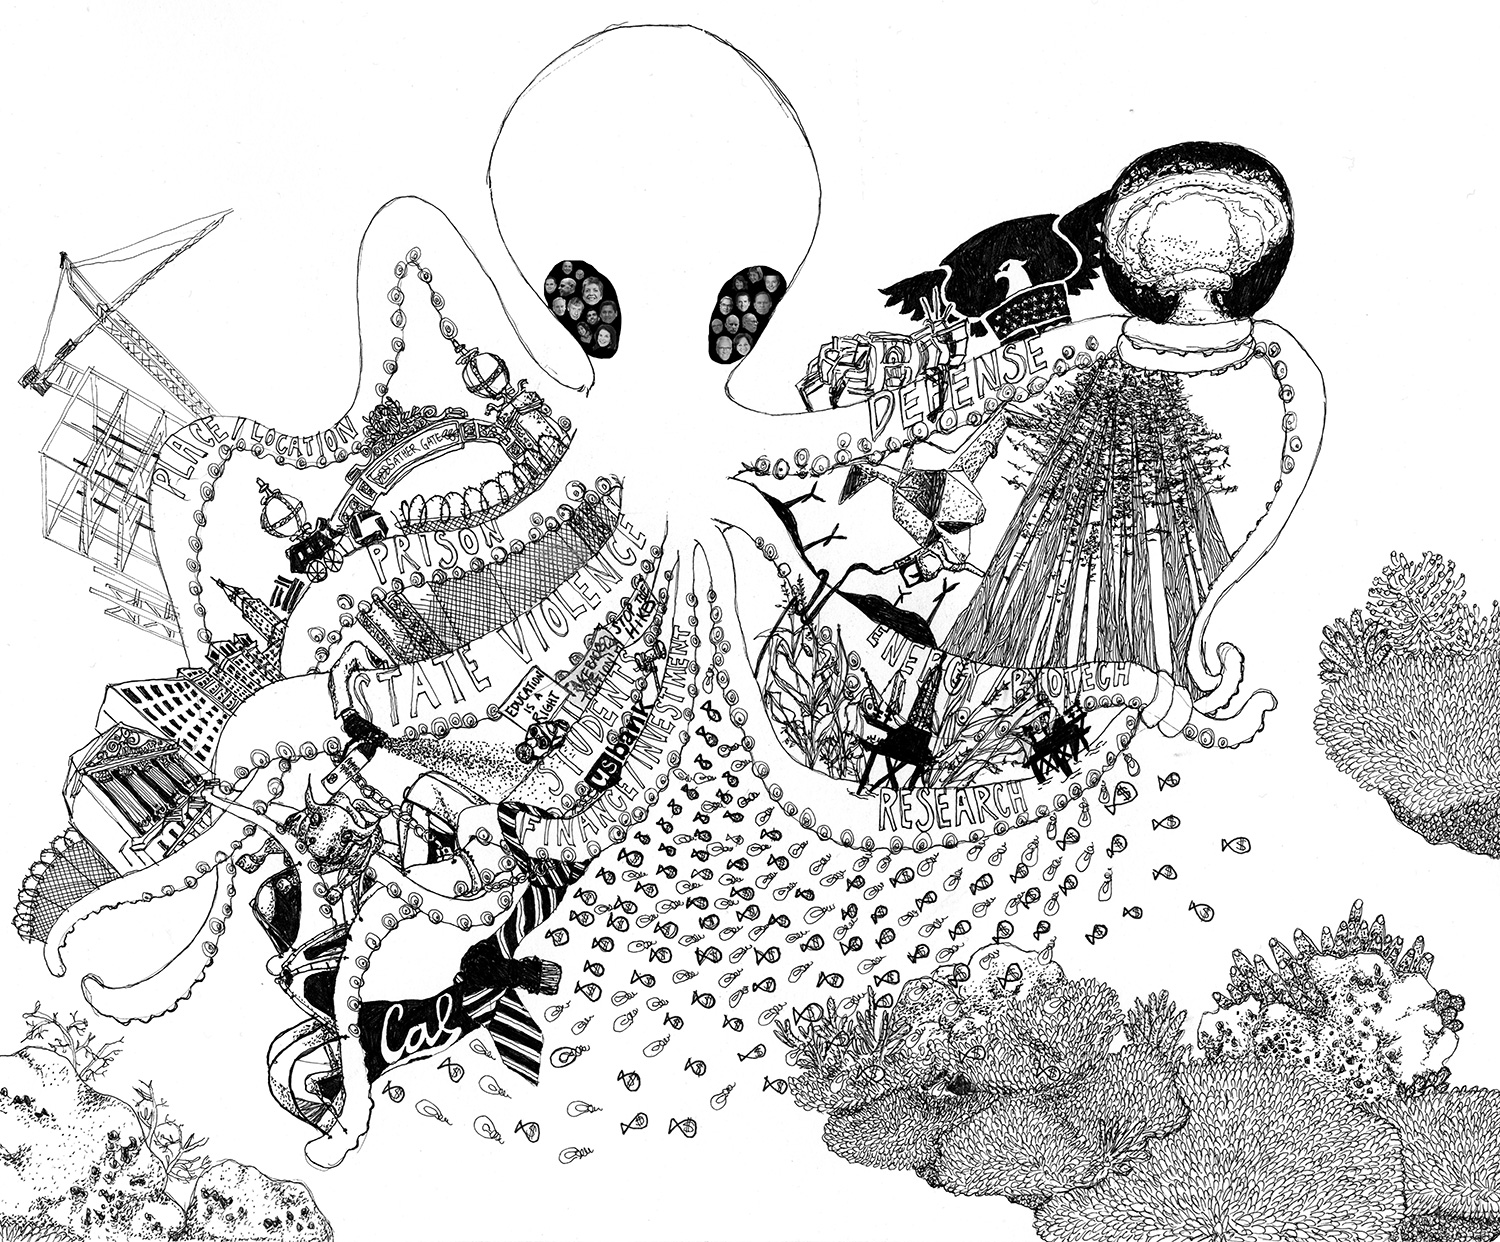 "The Octopus, drawing by Nicci Yin Created as part of the presentation ""The Octopus: Cognitive Capitalism and the University"" with Natalia Cecire and Miriam Neptune at The Scholar & Feminist 2015: Action on Educaiton. - See more at: http://sfonline.barnard.edu/navigating-neoliberalism-in-the-academy-nonprofits-and-beyond/about-this-issue/#imageclose-2467"